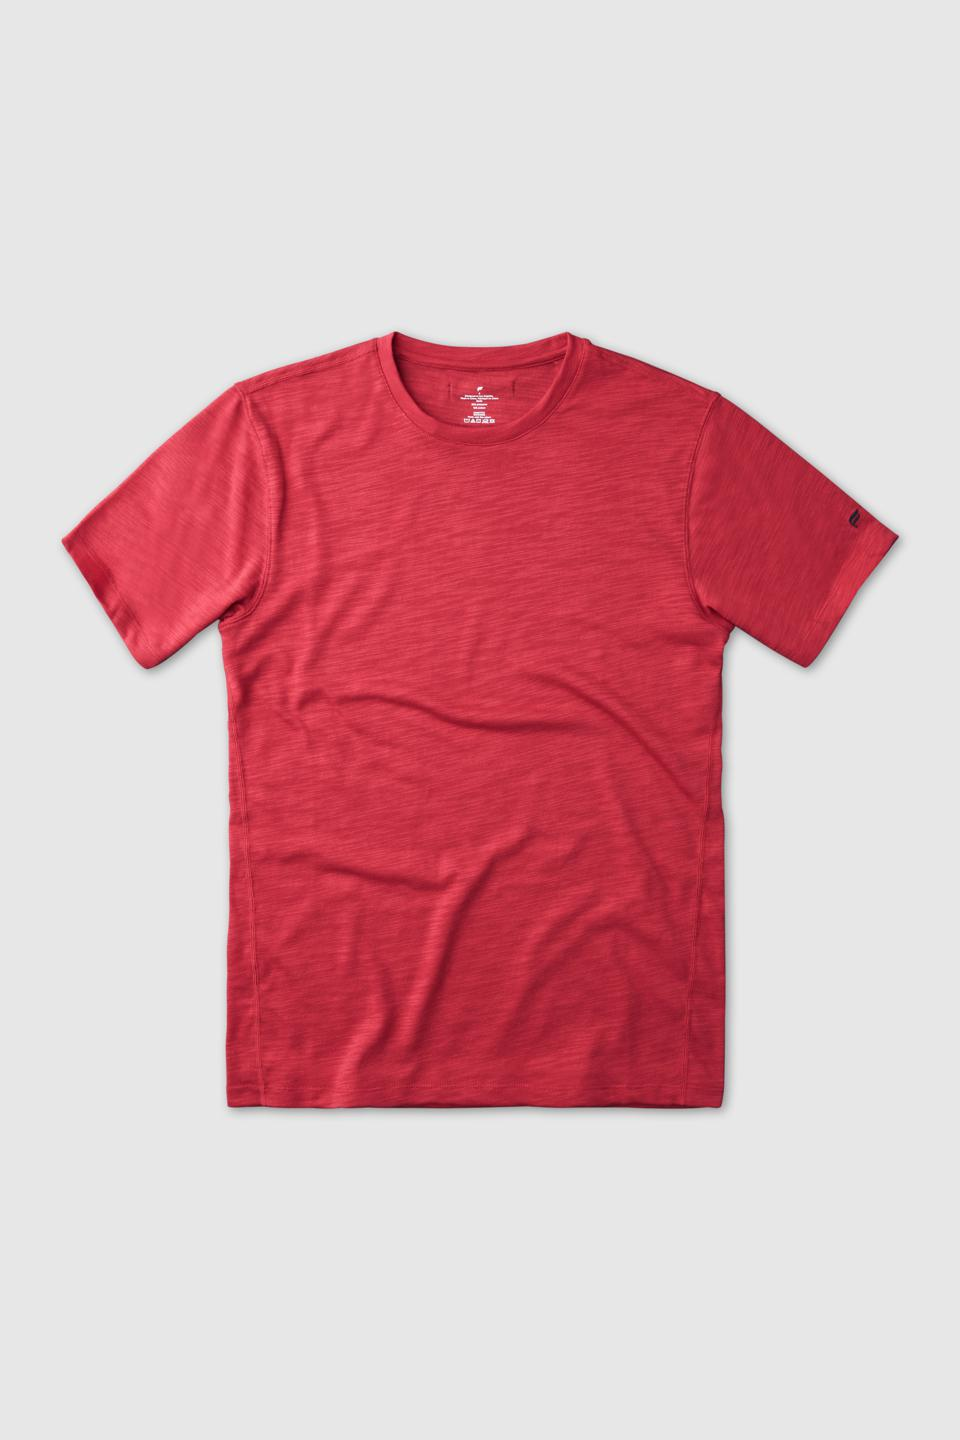 The Front Row Tee in Poppy Red Retail Price: $34.95 (VIP), $49.95